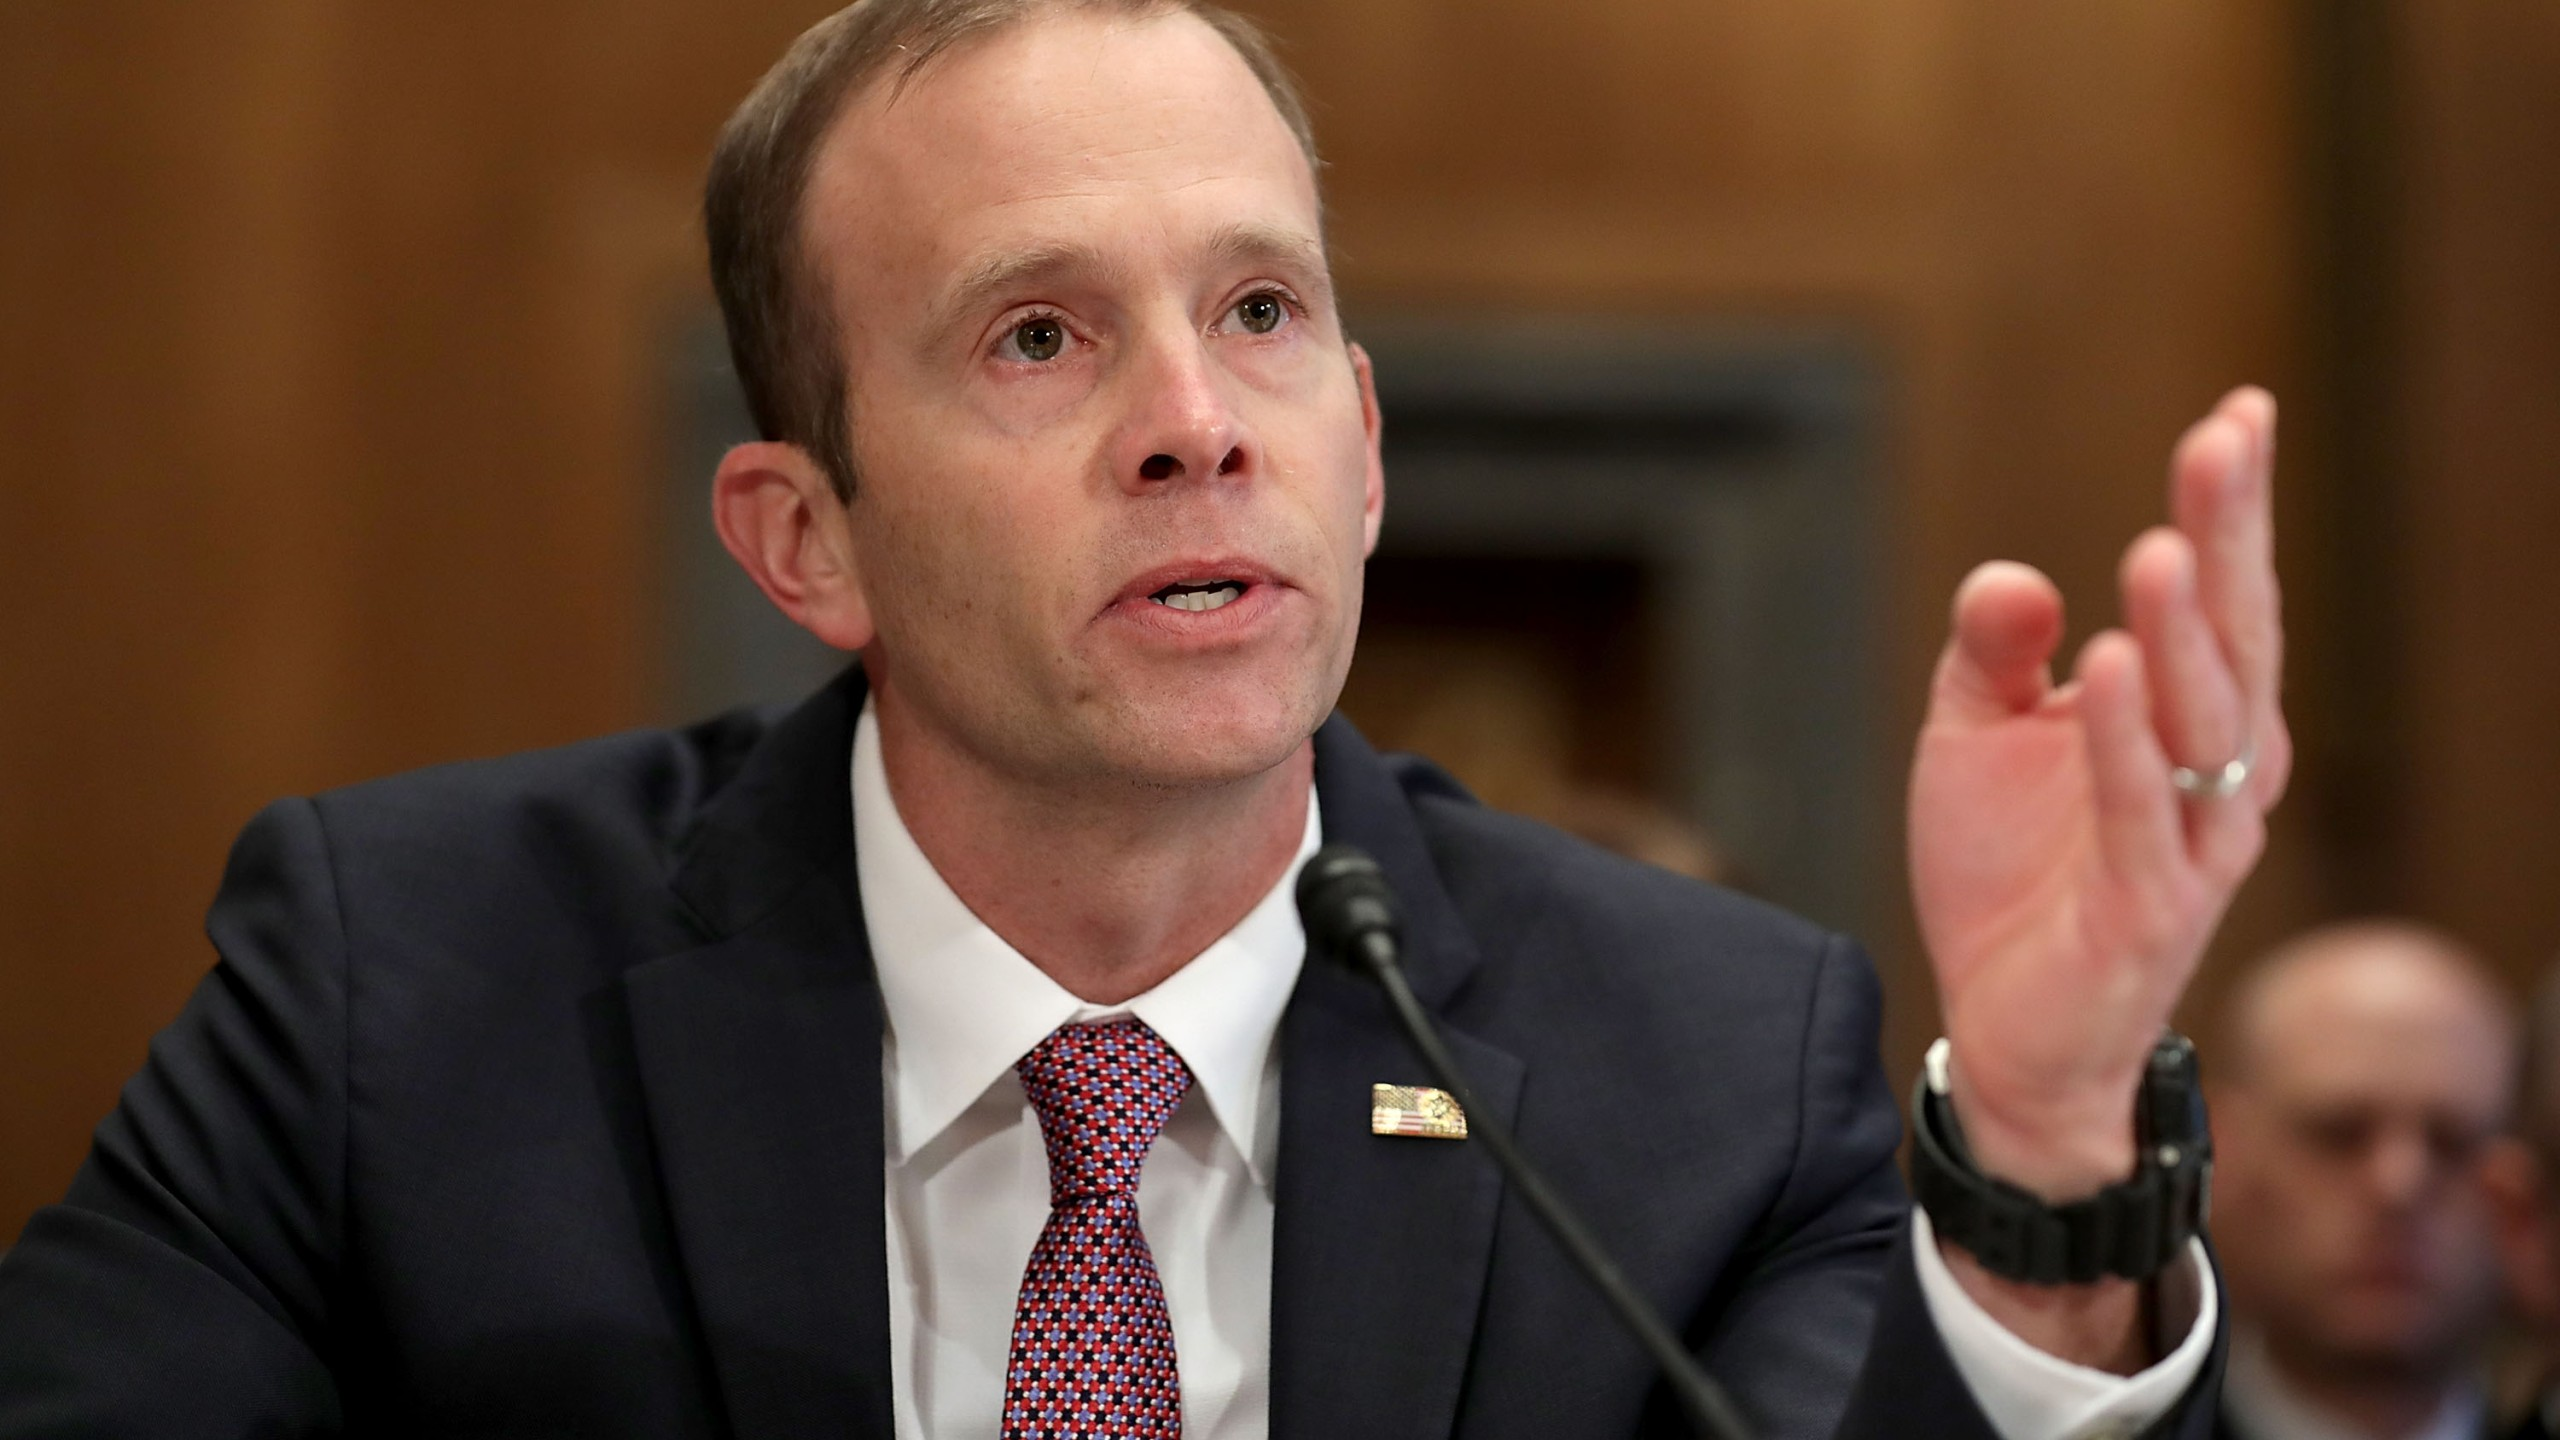 Federal Emergency Management Agency Administrator Brock Long testifies before the Senate Homeland Security and Governmental Affairs Committee in the Dirksen Senate Office Building on Capitol Hill October 31, 2017 in Washington, DC. (Credit: Chip Somodevilla/Getty Images)